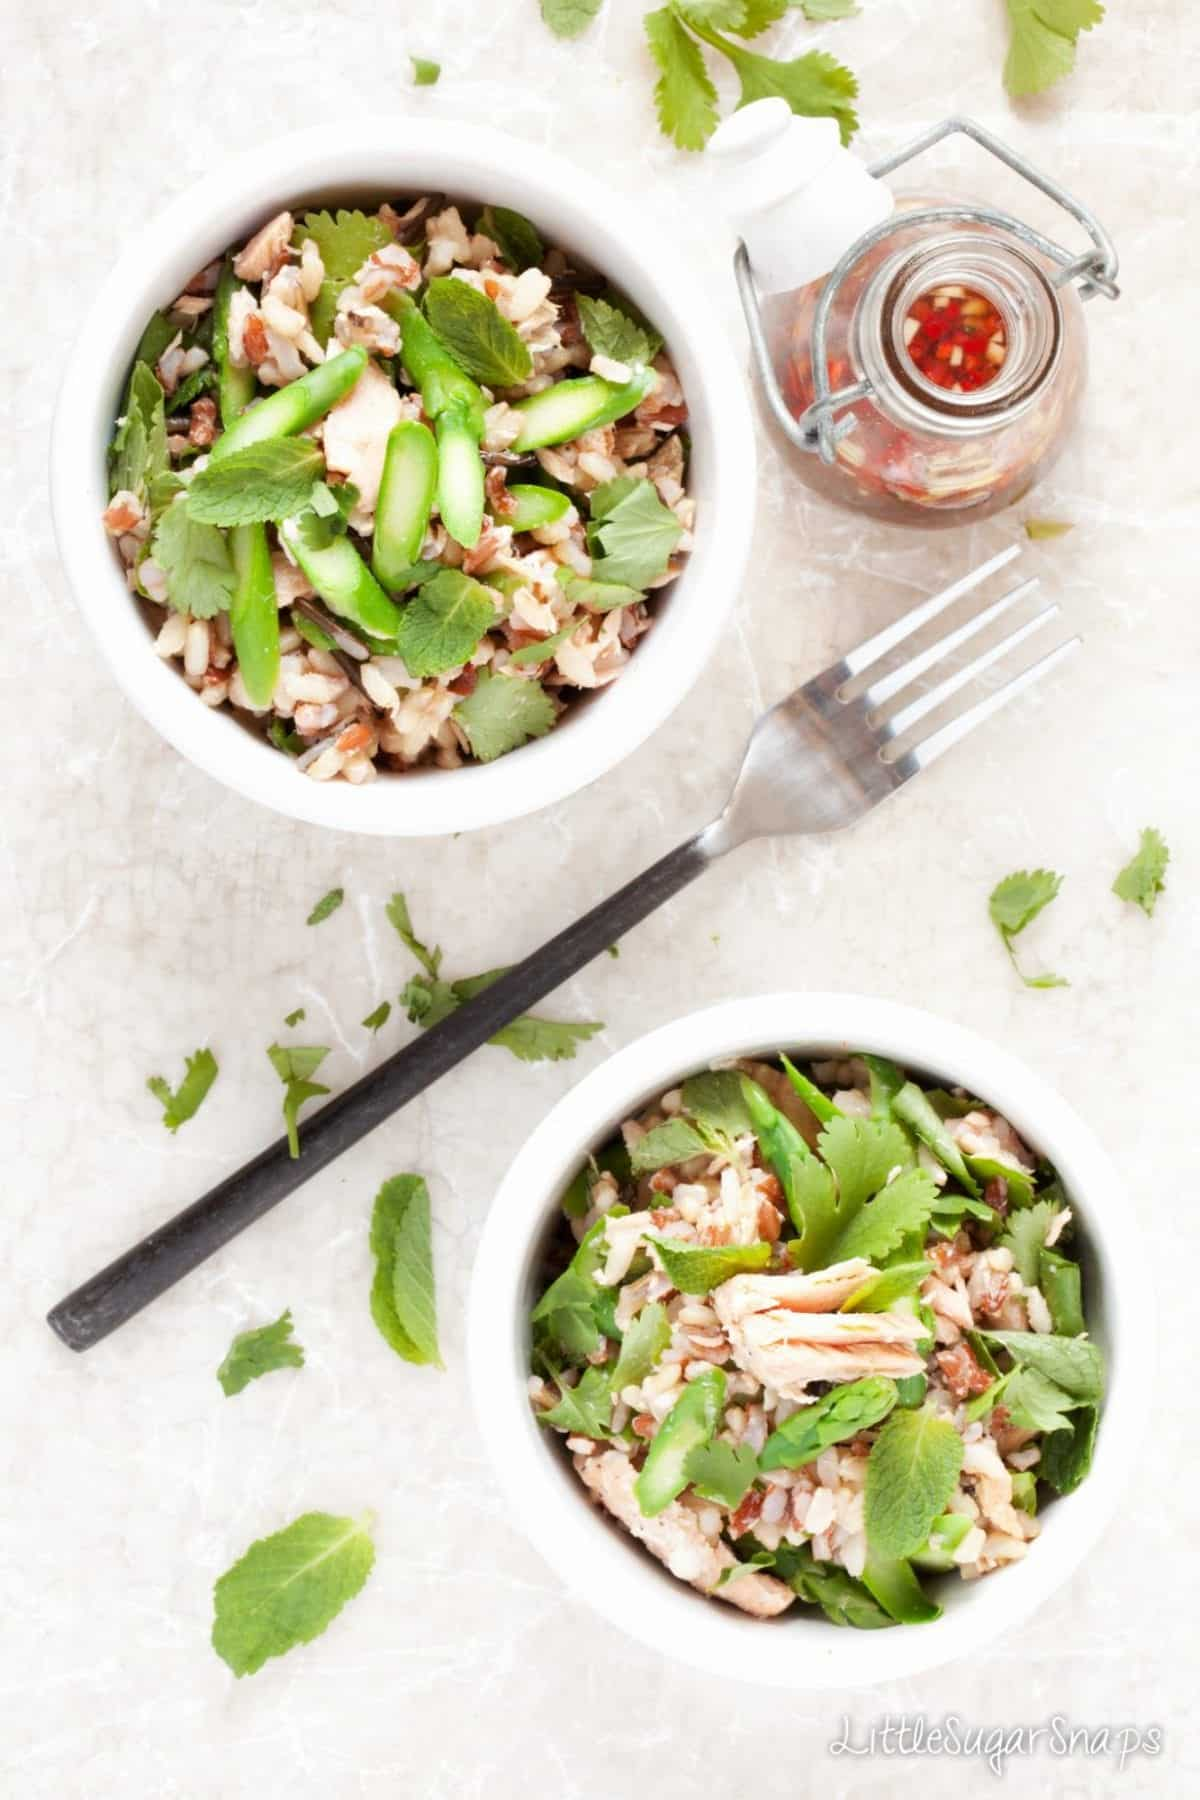 Two salad bowls of rice, salmon, asparagus and green herbs.